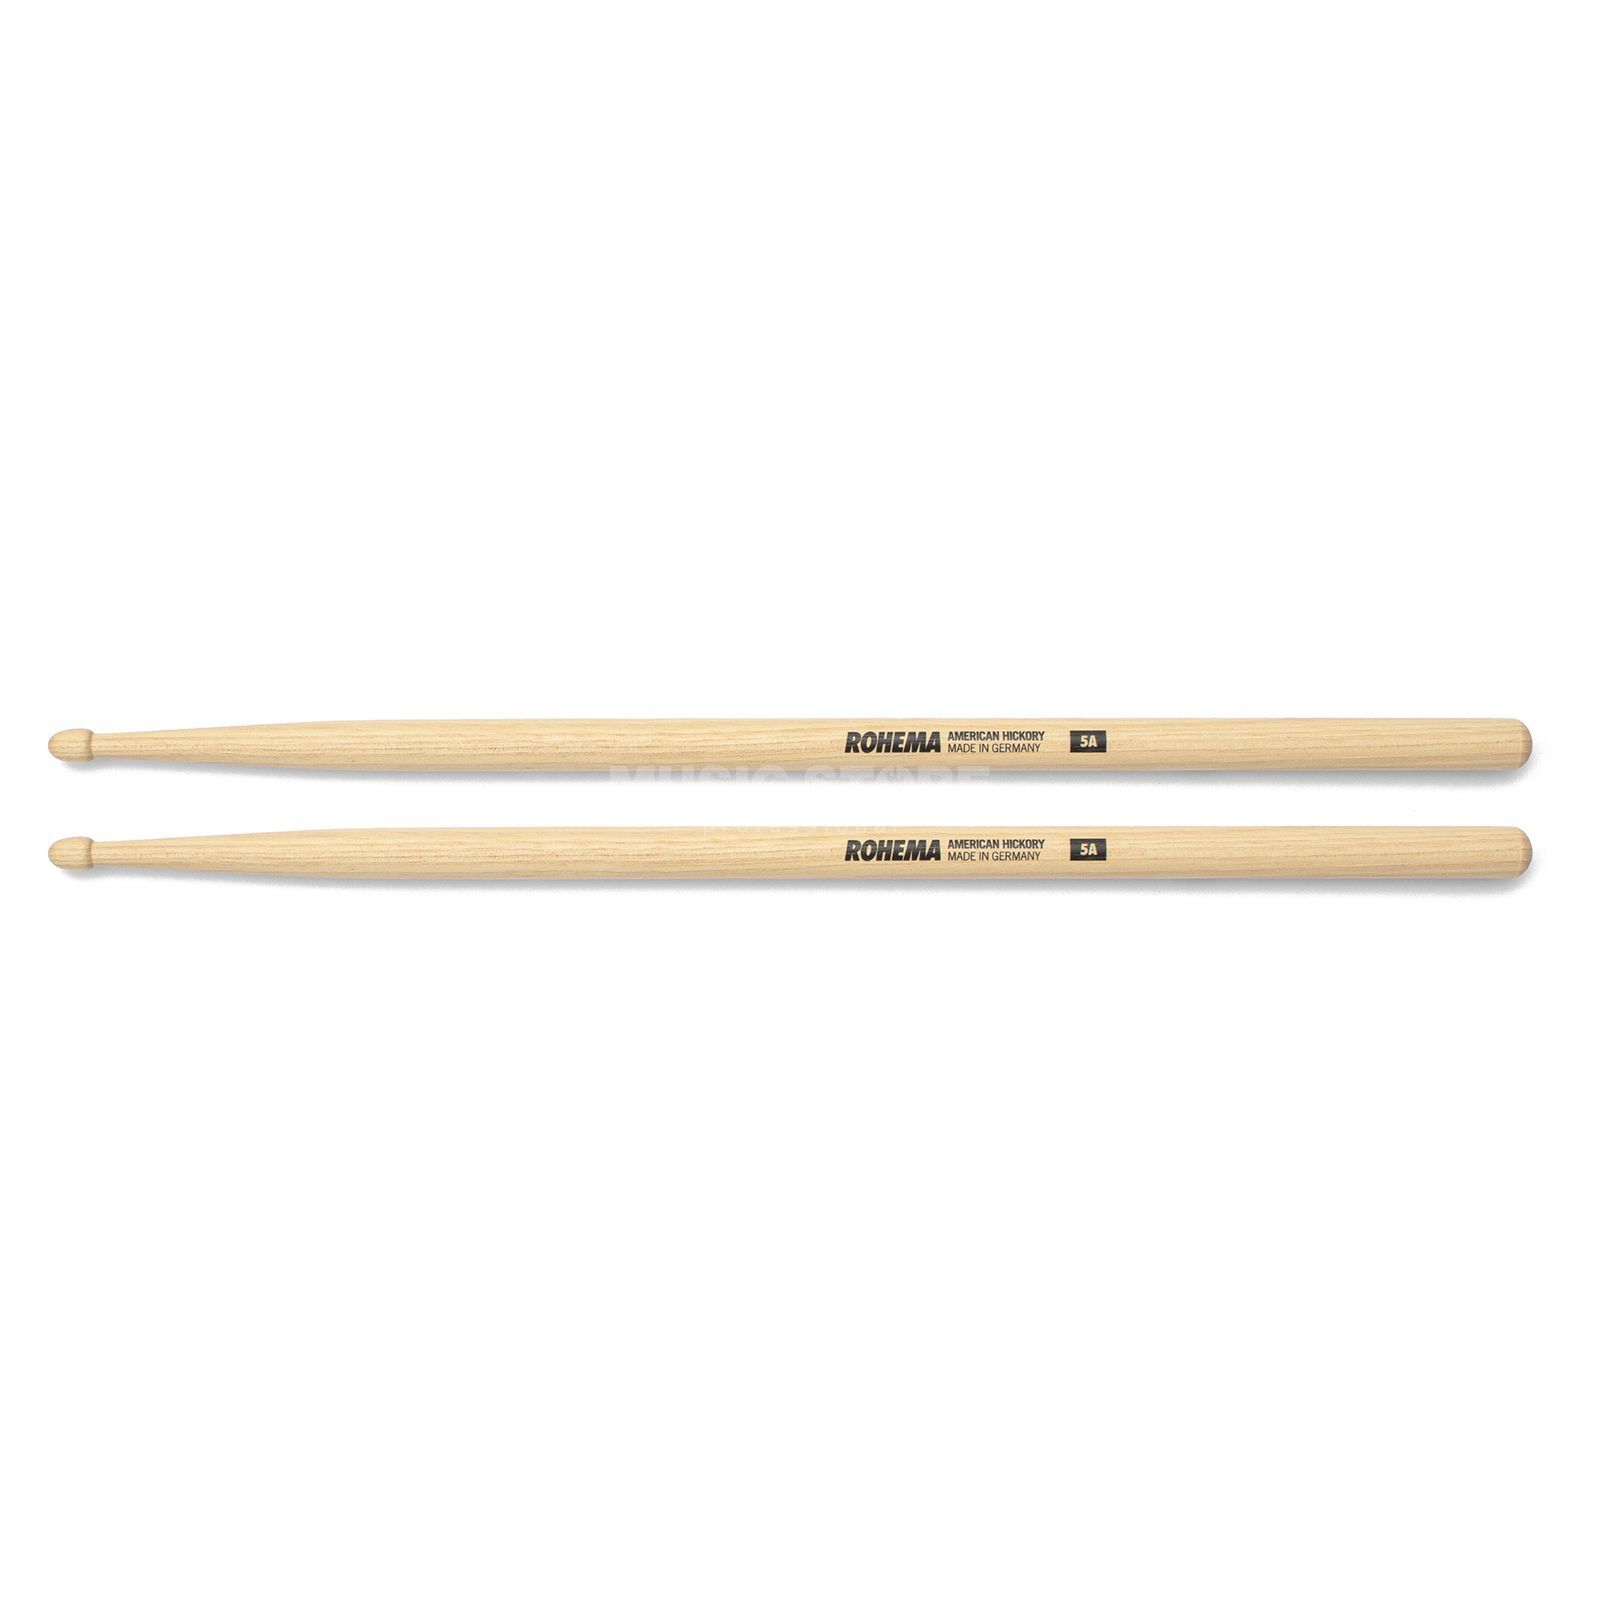 Rohema Classic 5A Sticks, Hickory Product Image